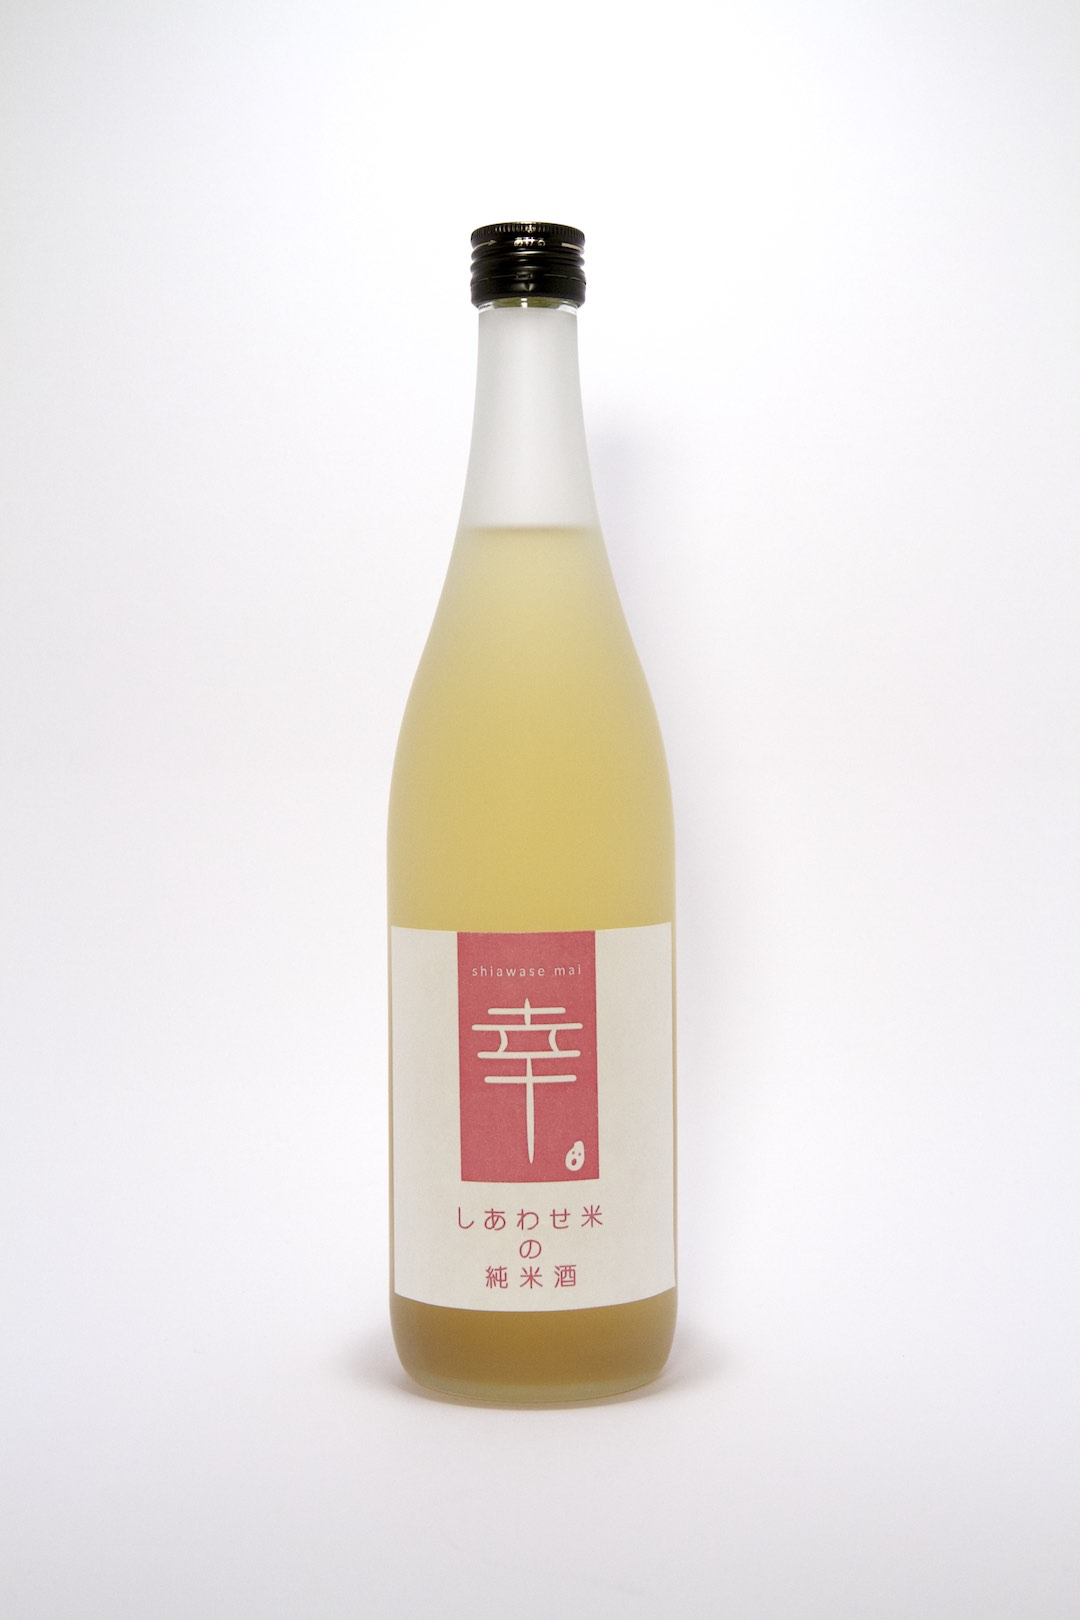 Shiawase Mai – organic junmai classified sake by Komatsu Shuzojo from Usa (Oita)